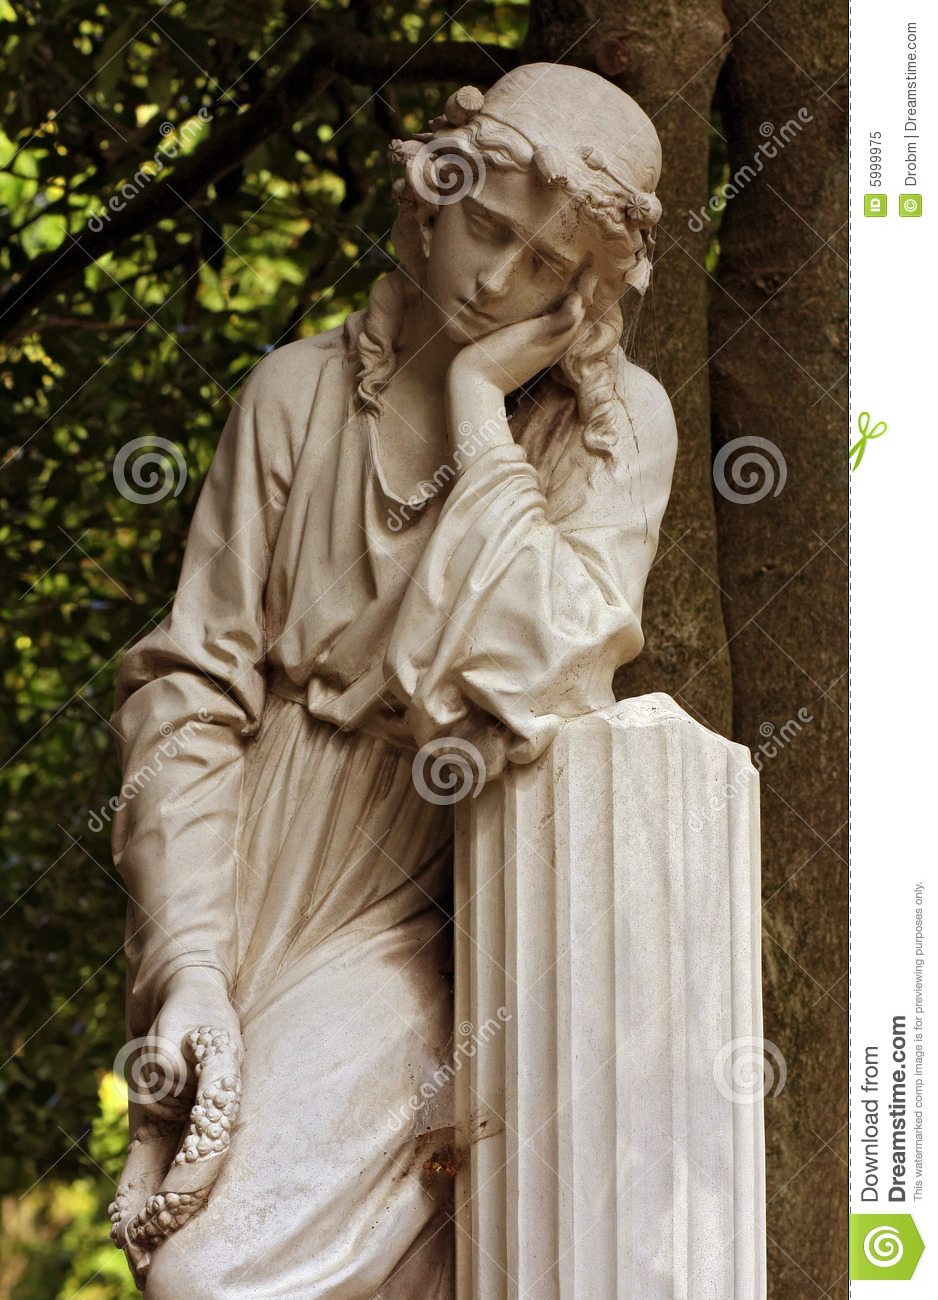 Female Statue Stock Image Image Of Gardening Sculptor